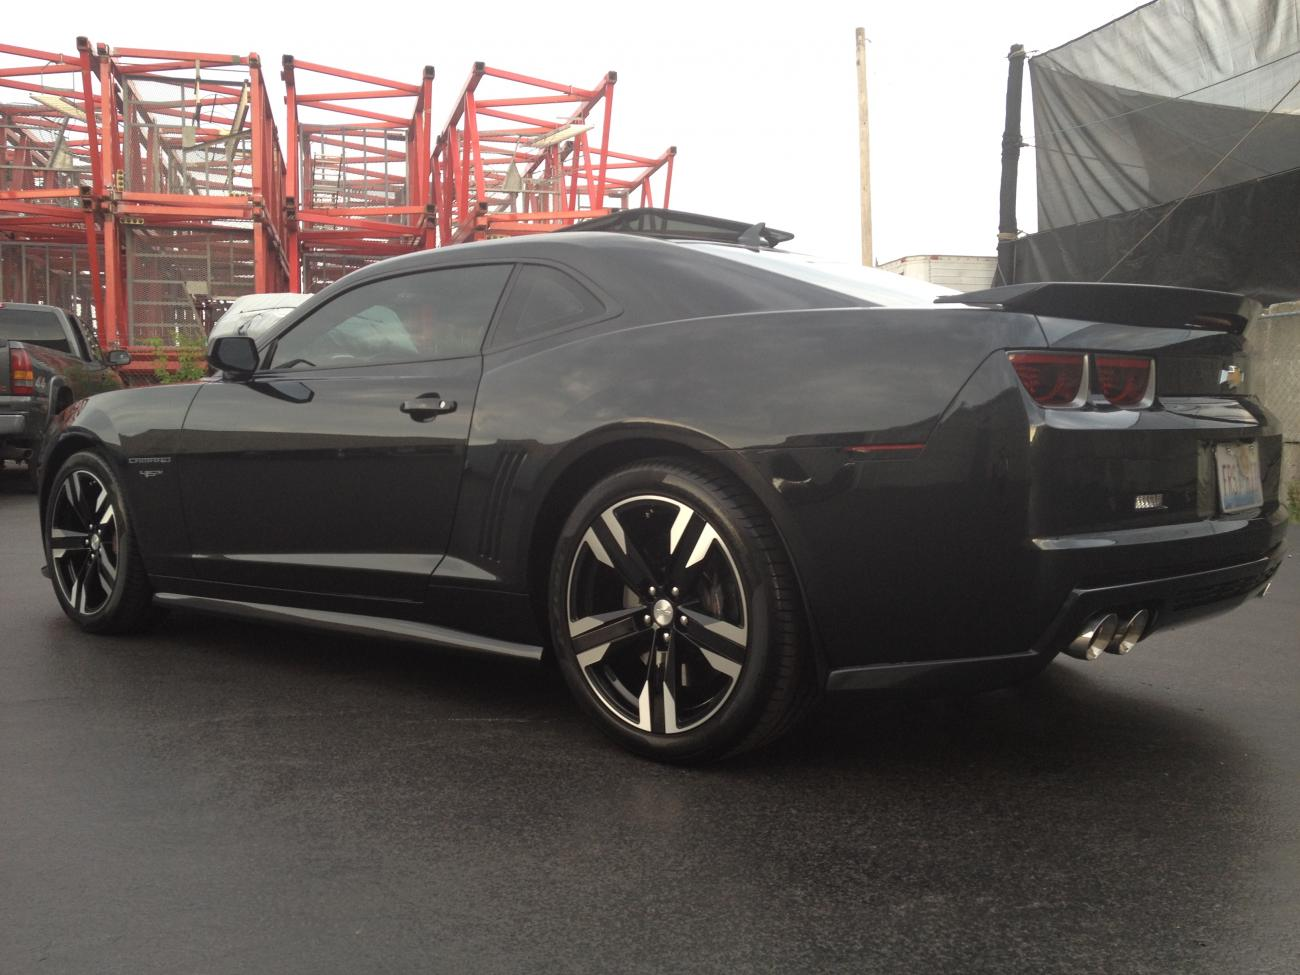 Zl1 Replica 22 Wheels And Tires Package Autos Post